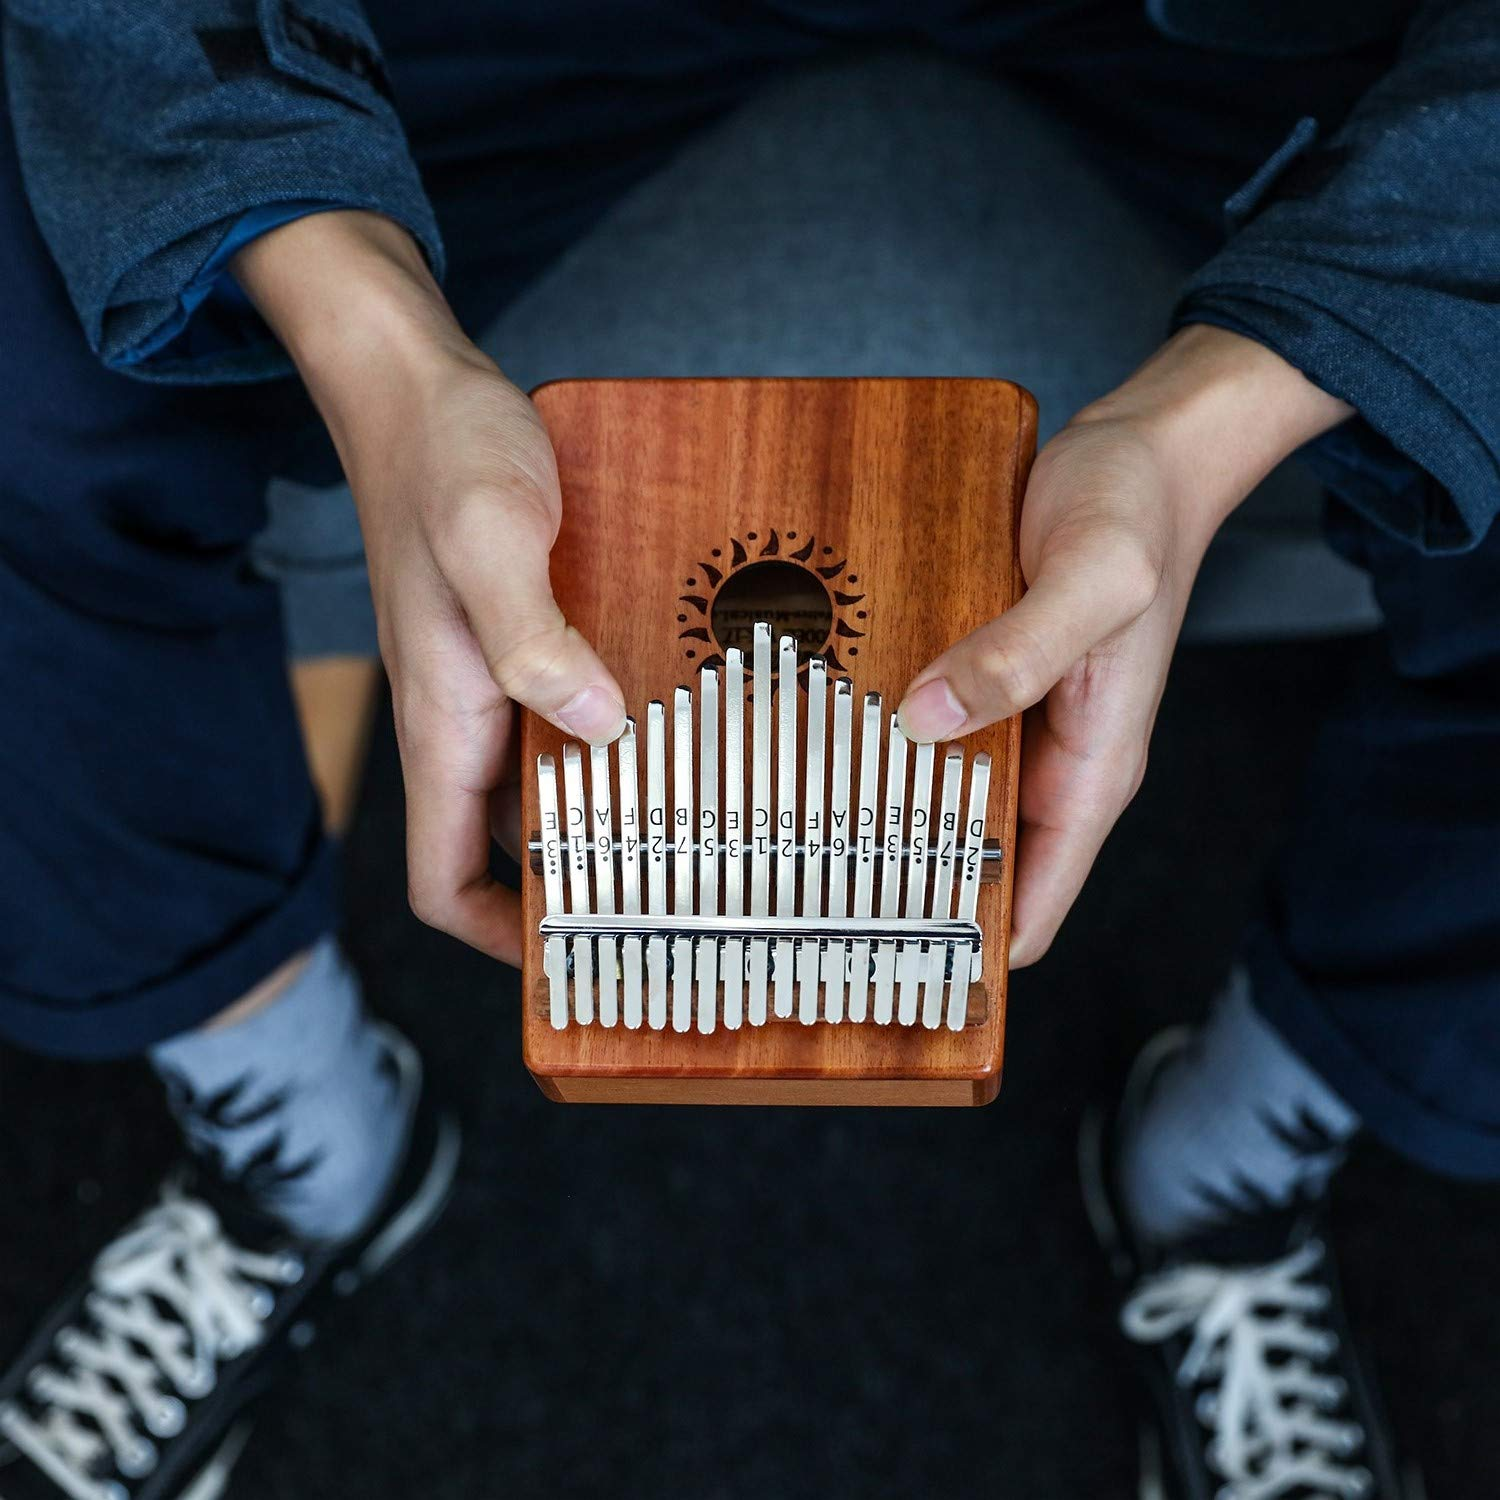 Donner 17 Key Kalimba Thumb Piano Solid Finger Piano Mahogany Body DKL-17 With Hard Case by Donner (Image #7)